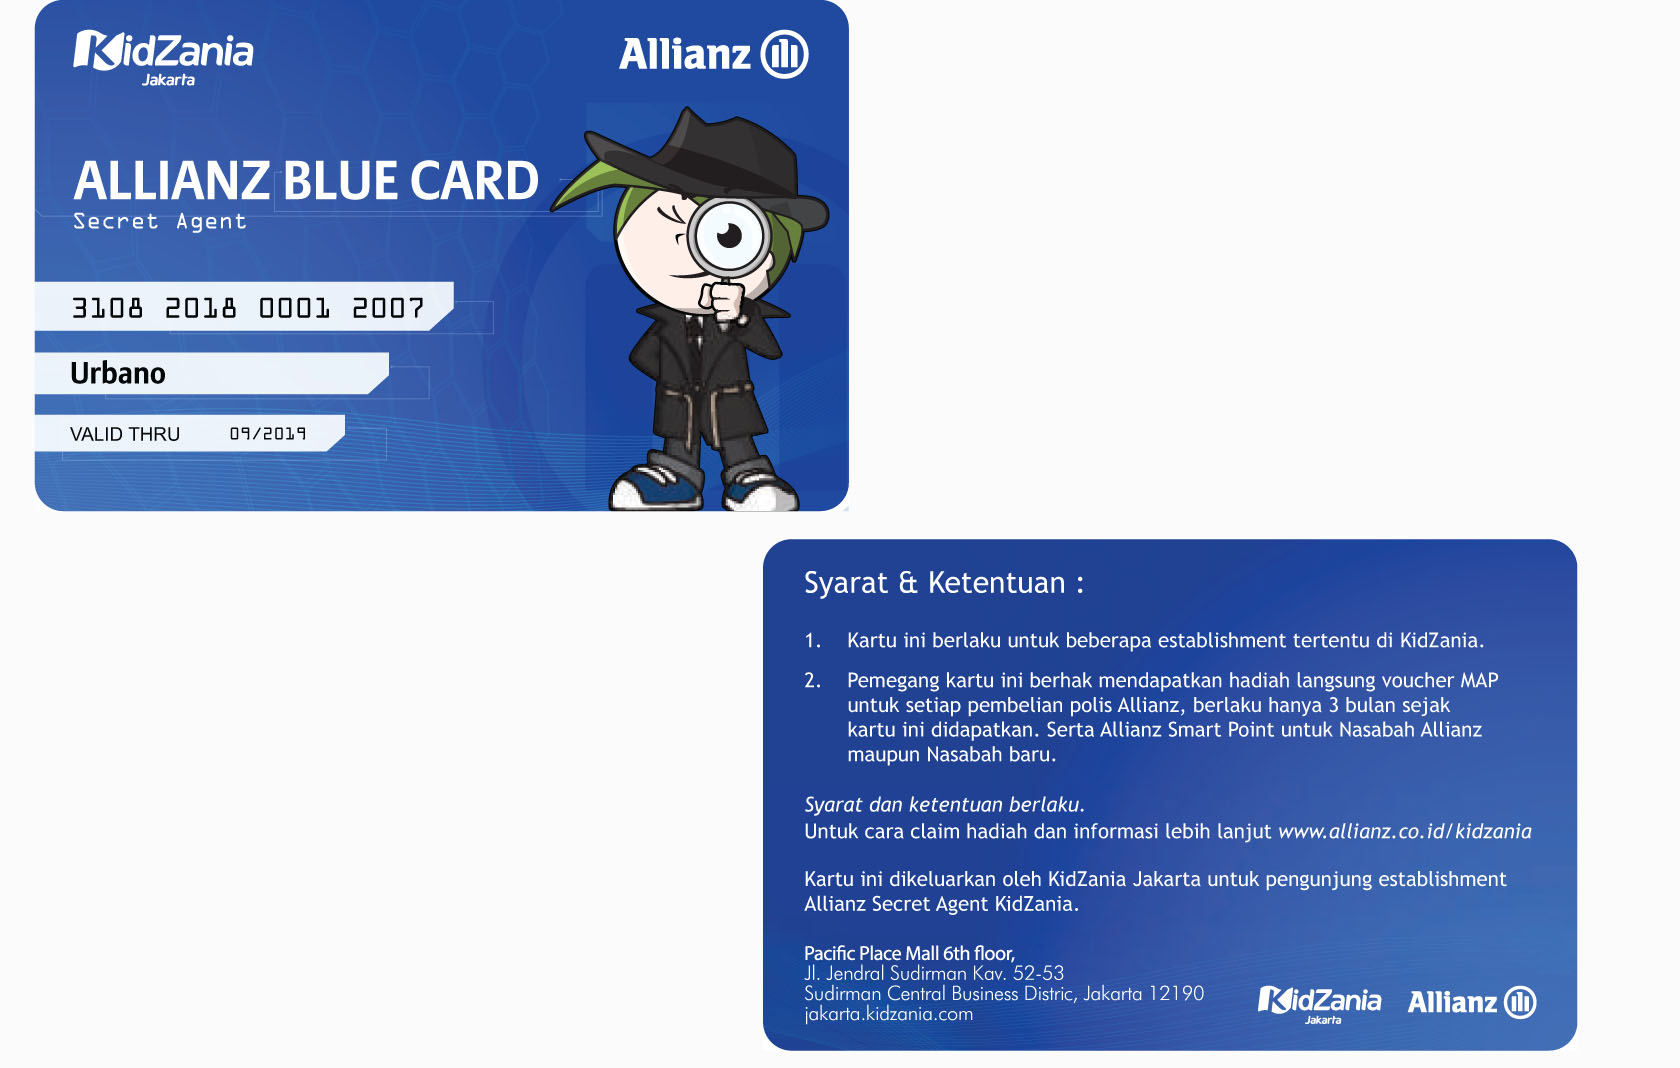 kartu allianz blue card kidzania